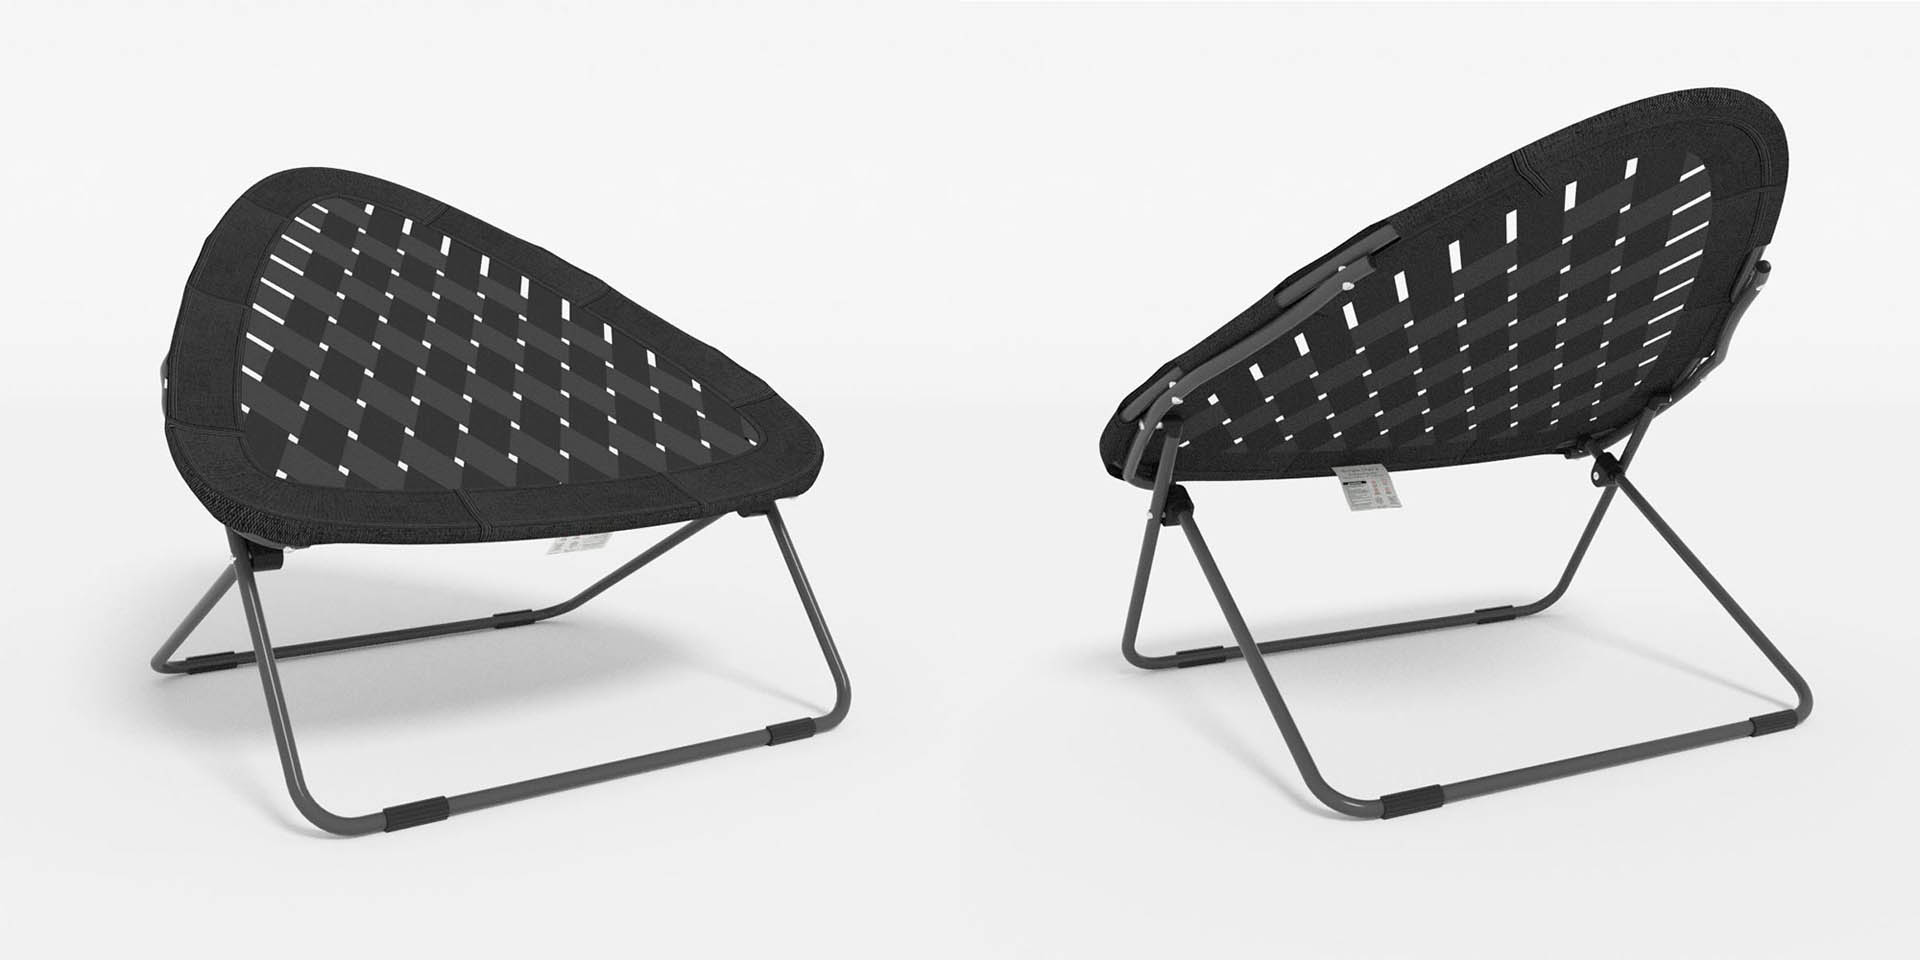 Front And Back View Of The Strap Chair